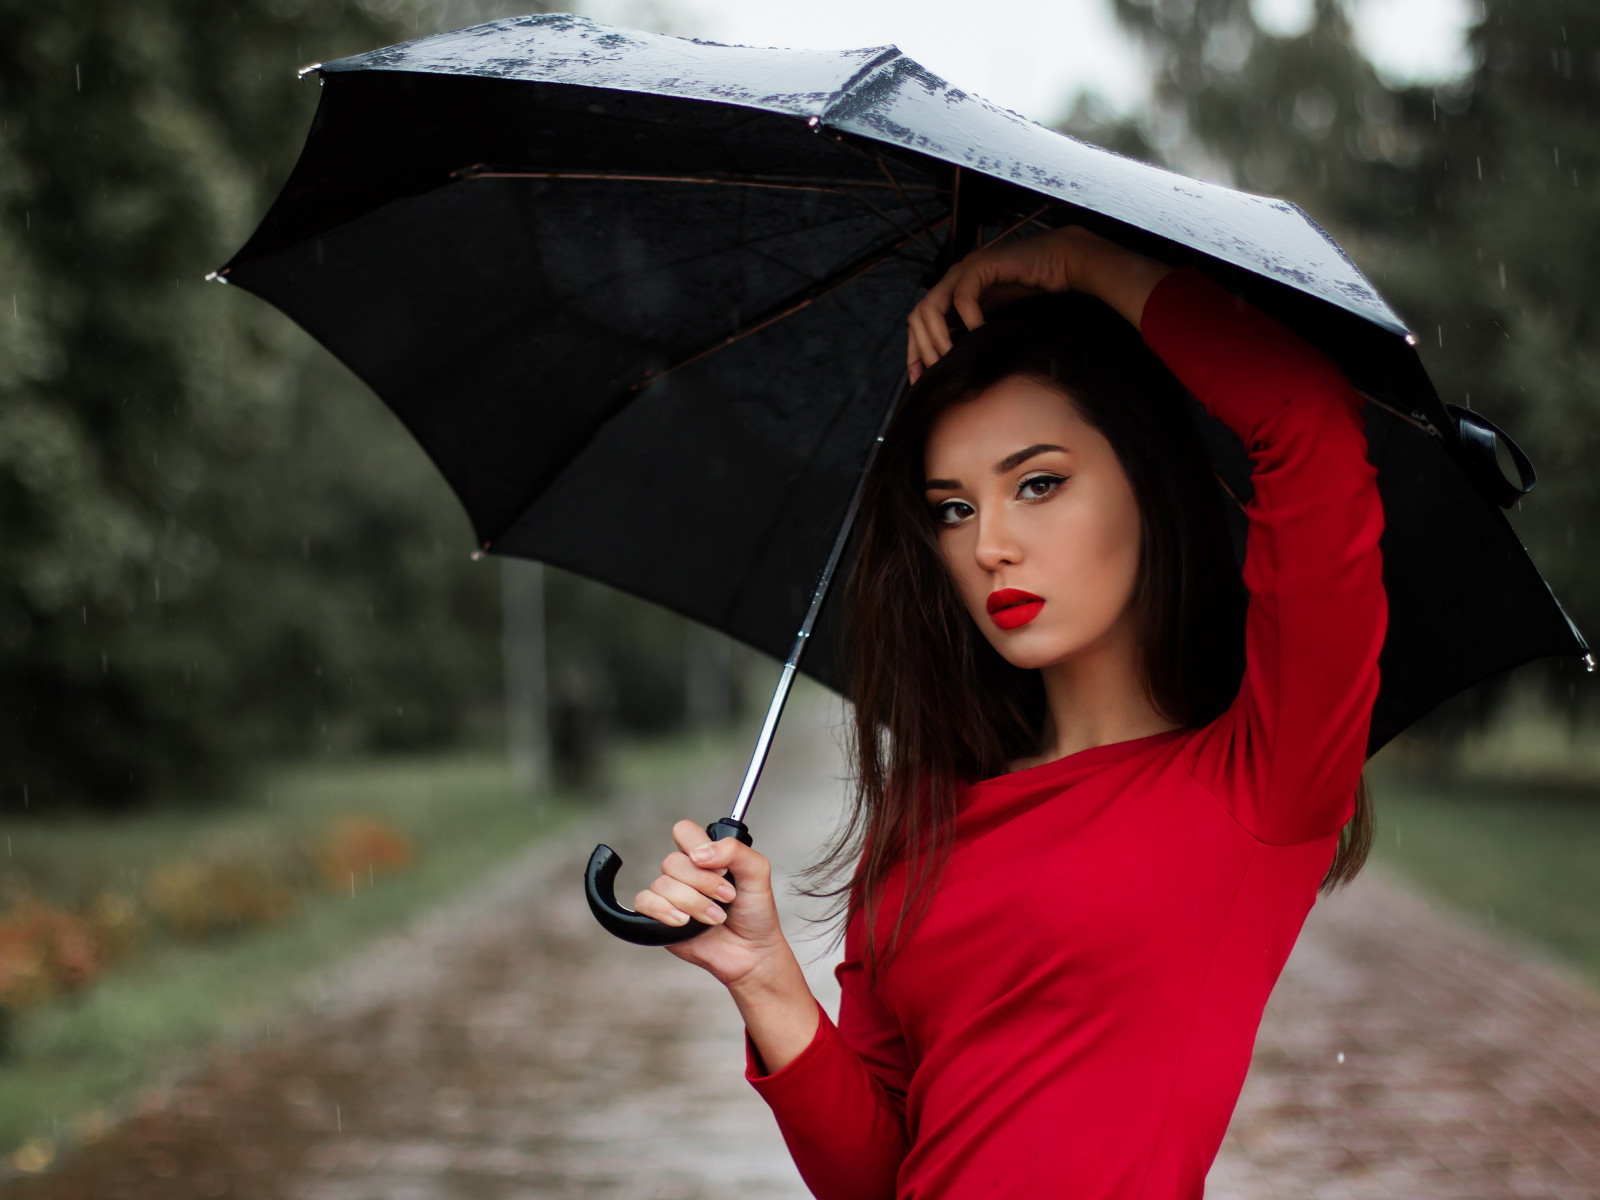 Beauitful girl in a rainy day | 1600x1200 wallpaper